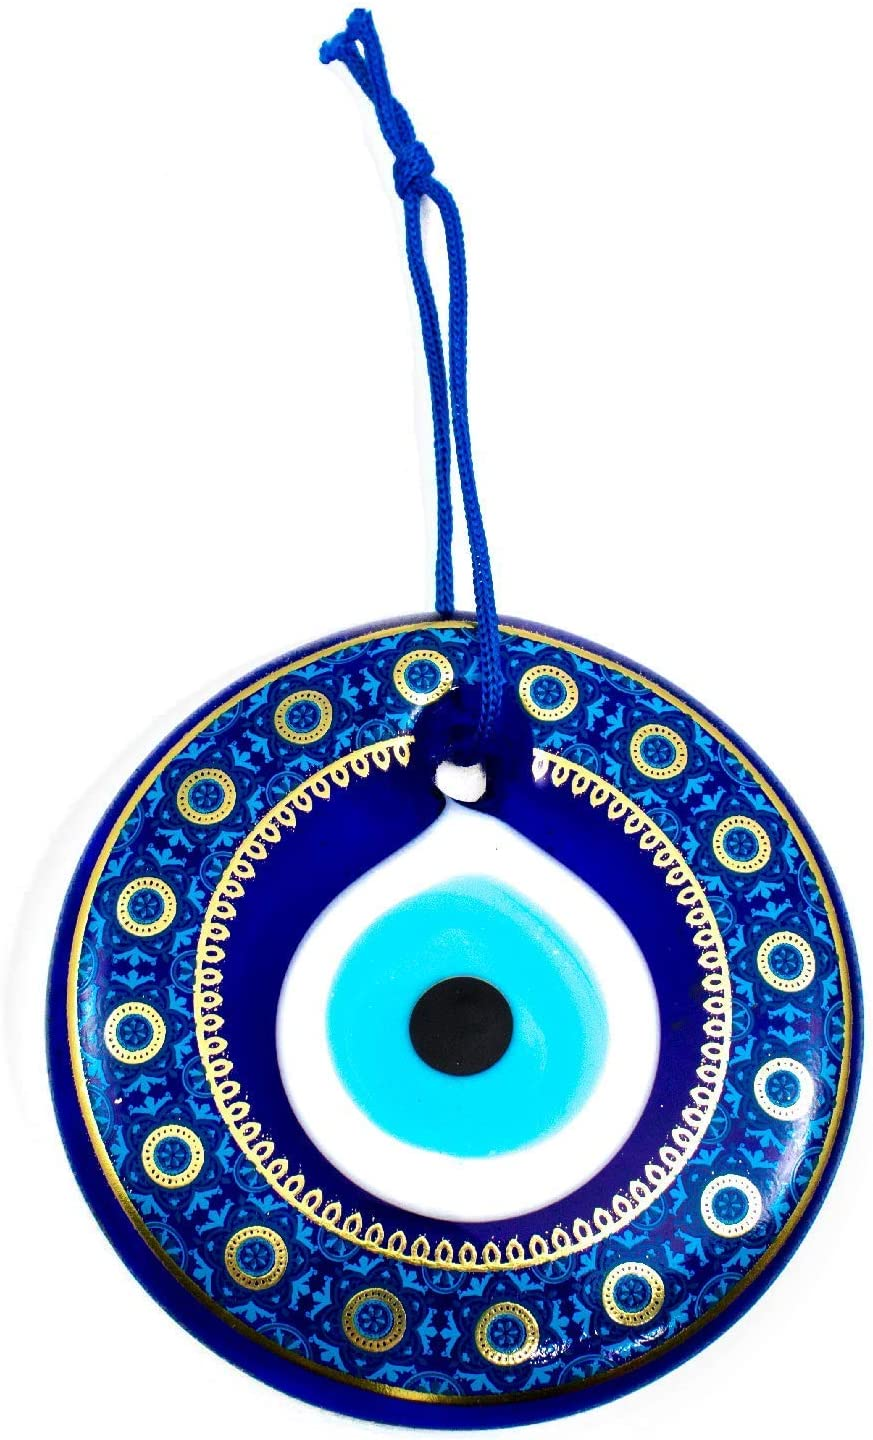 Erbulus Glass Blue Evil Eye Wall Hanging Gold and Navy Floral Design Ornament – Turkish Nazar Bead - Home Protection Charm - Wall Art Decor Amulet in a Box